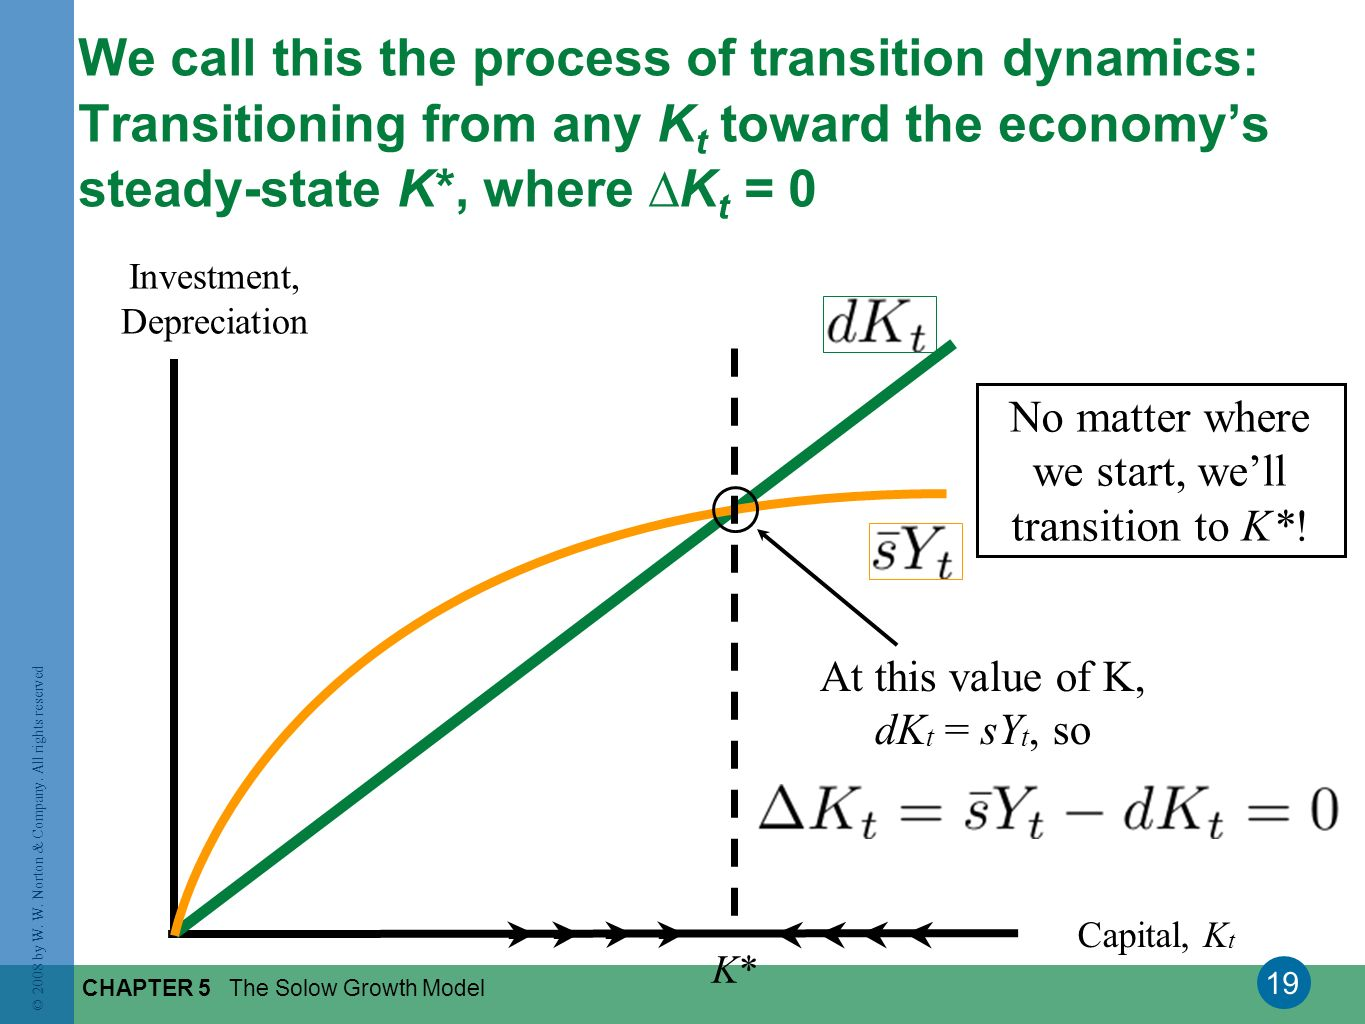 We call this the process of transition dynamics: Transitioning from any Kt toward the economy's steady-state K*, where ∆Kt = 0